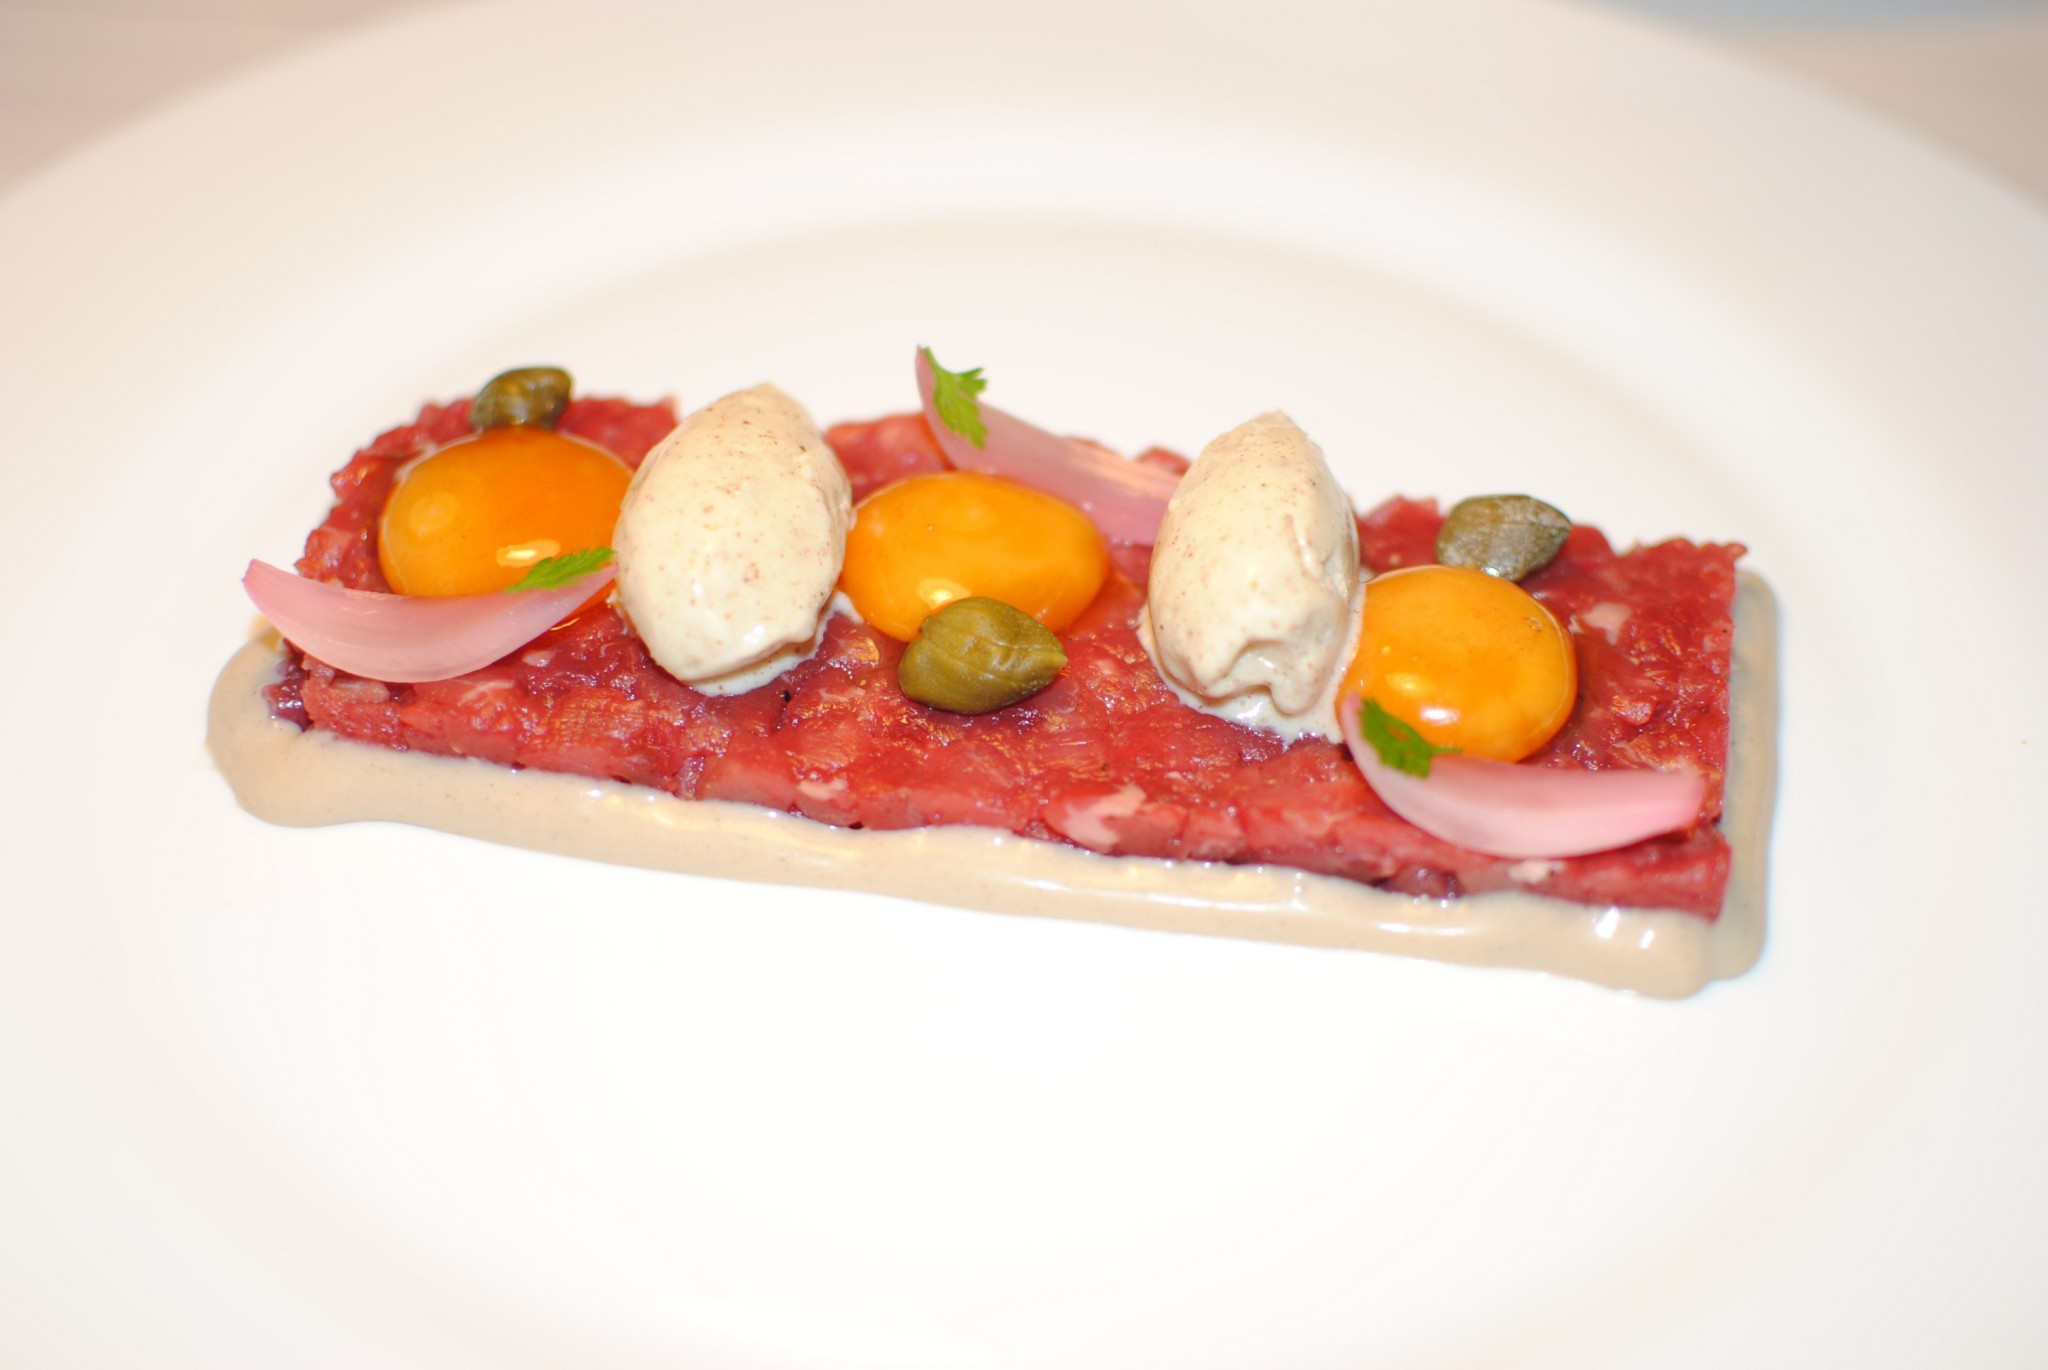 Steak Tartar Al Trapo